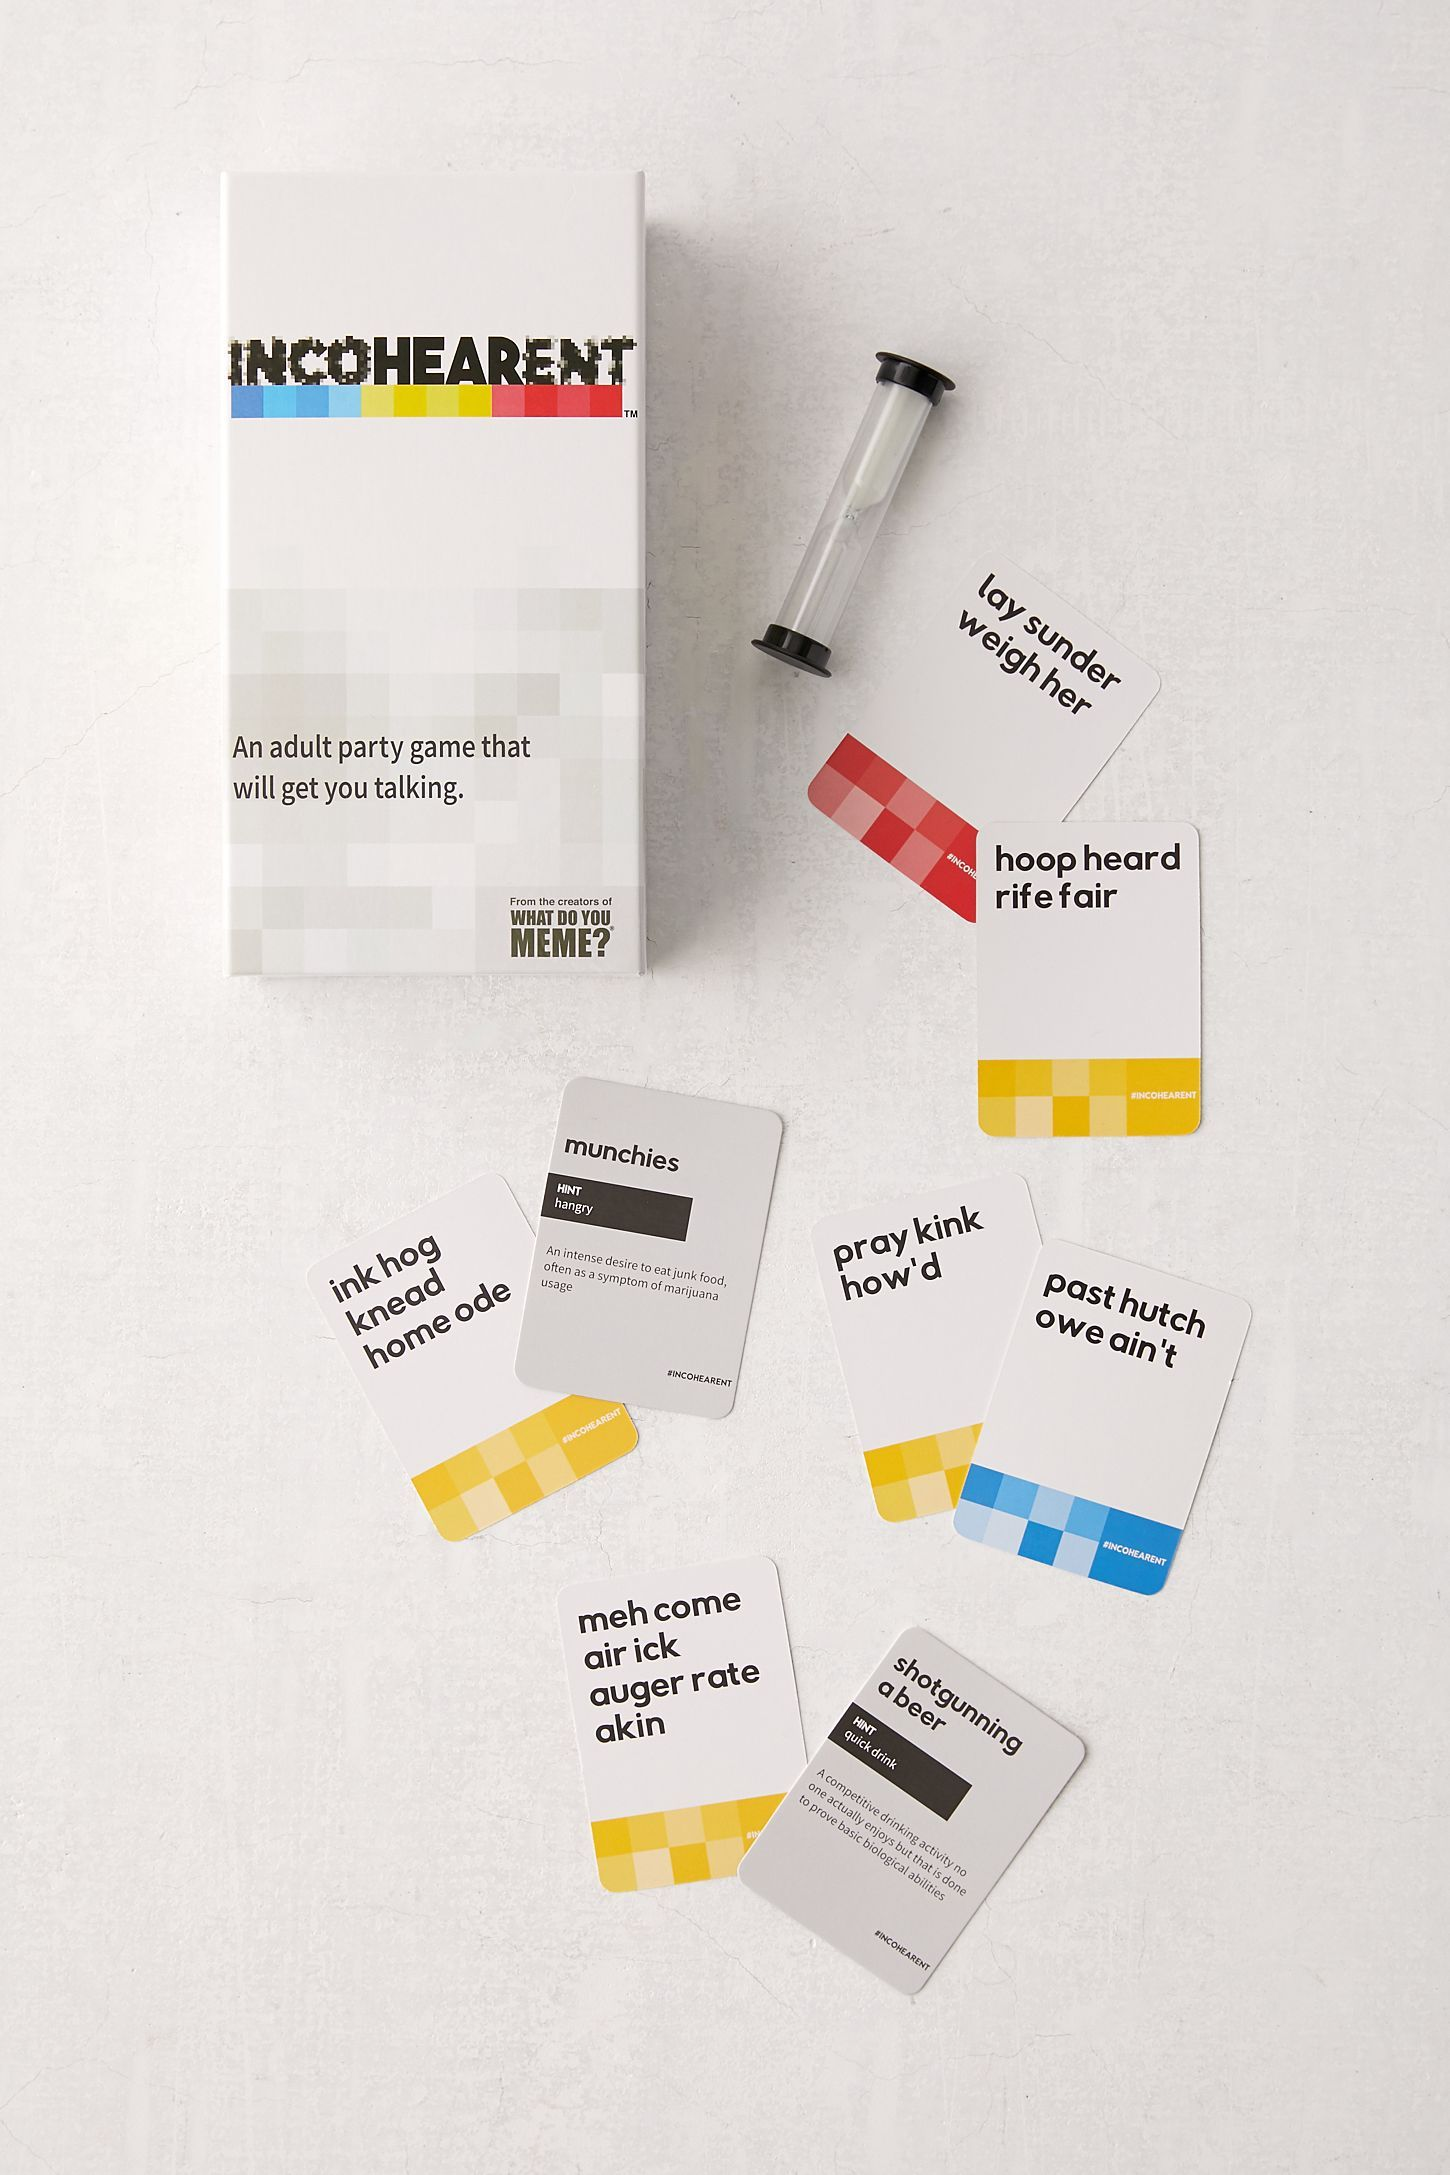 Incohearent Card Game Card Games Bachelorette Party Games Games